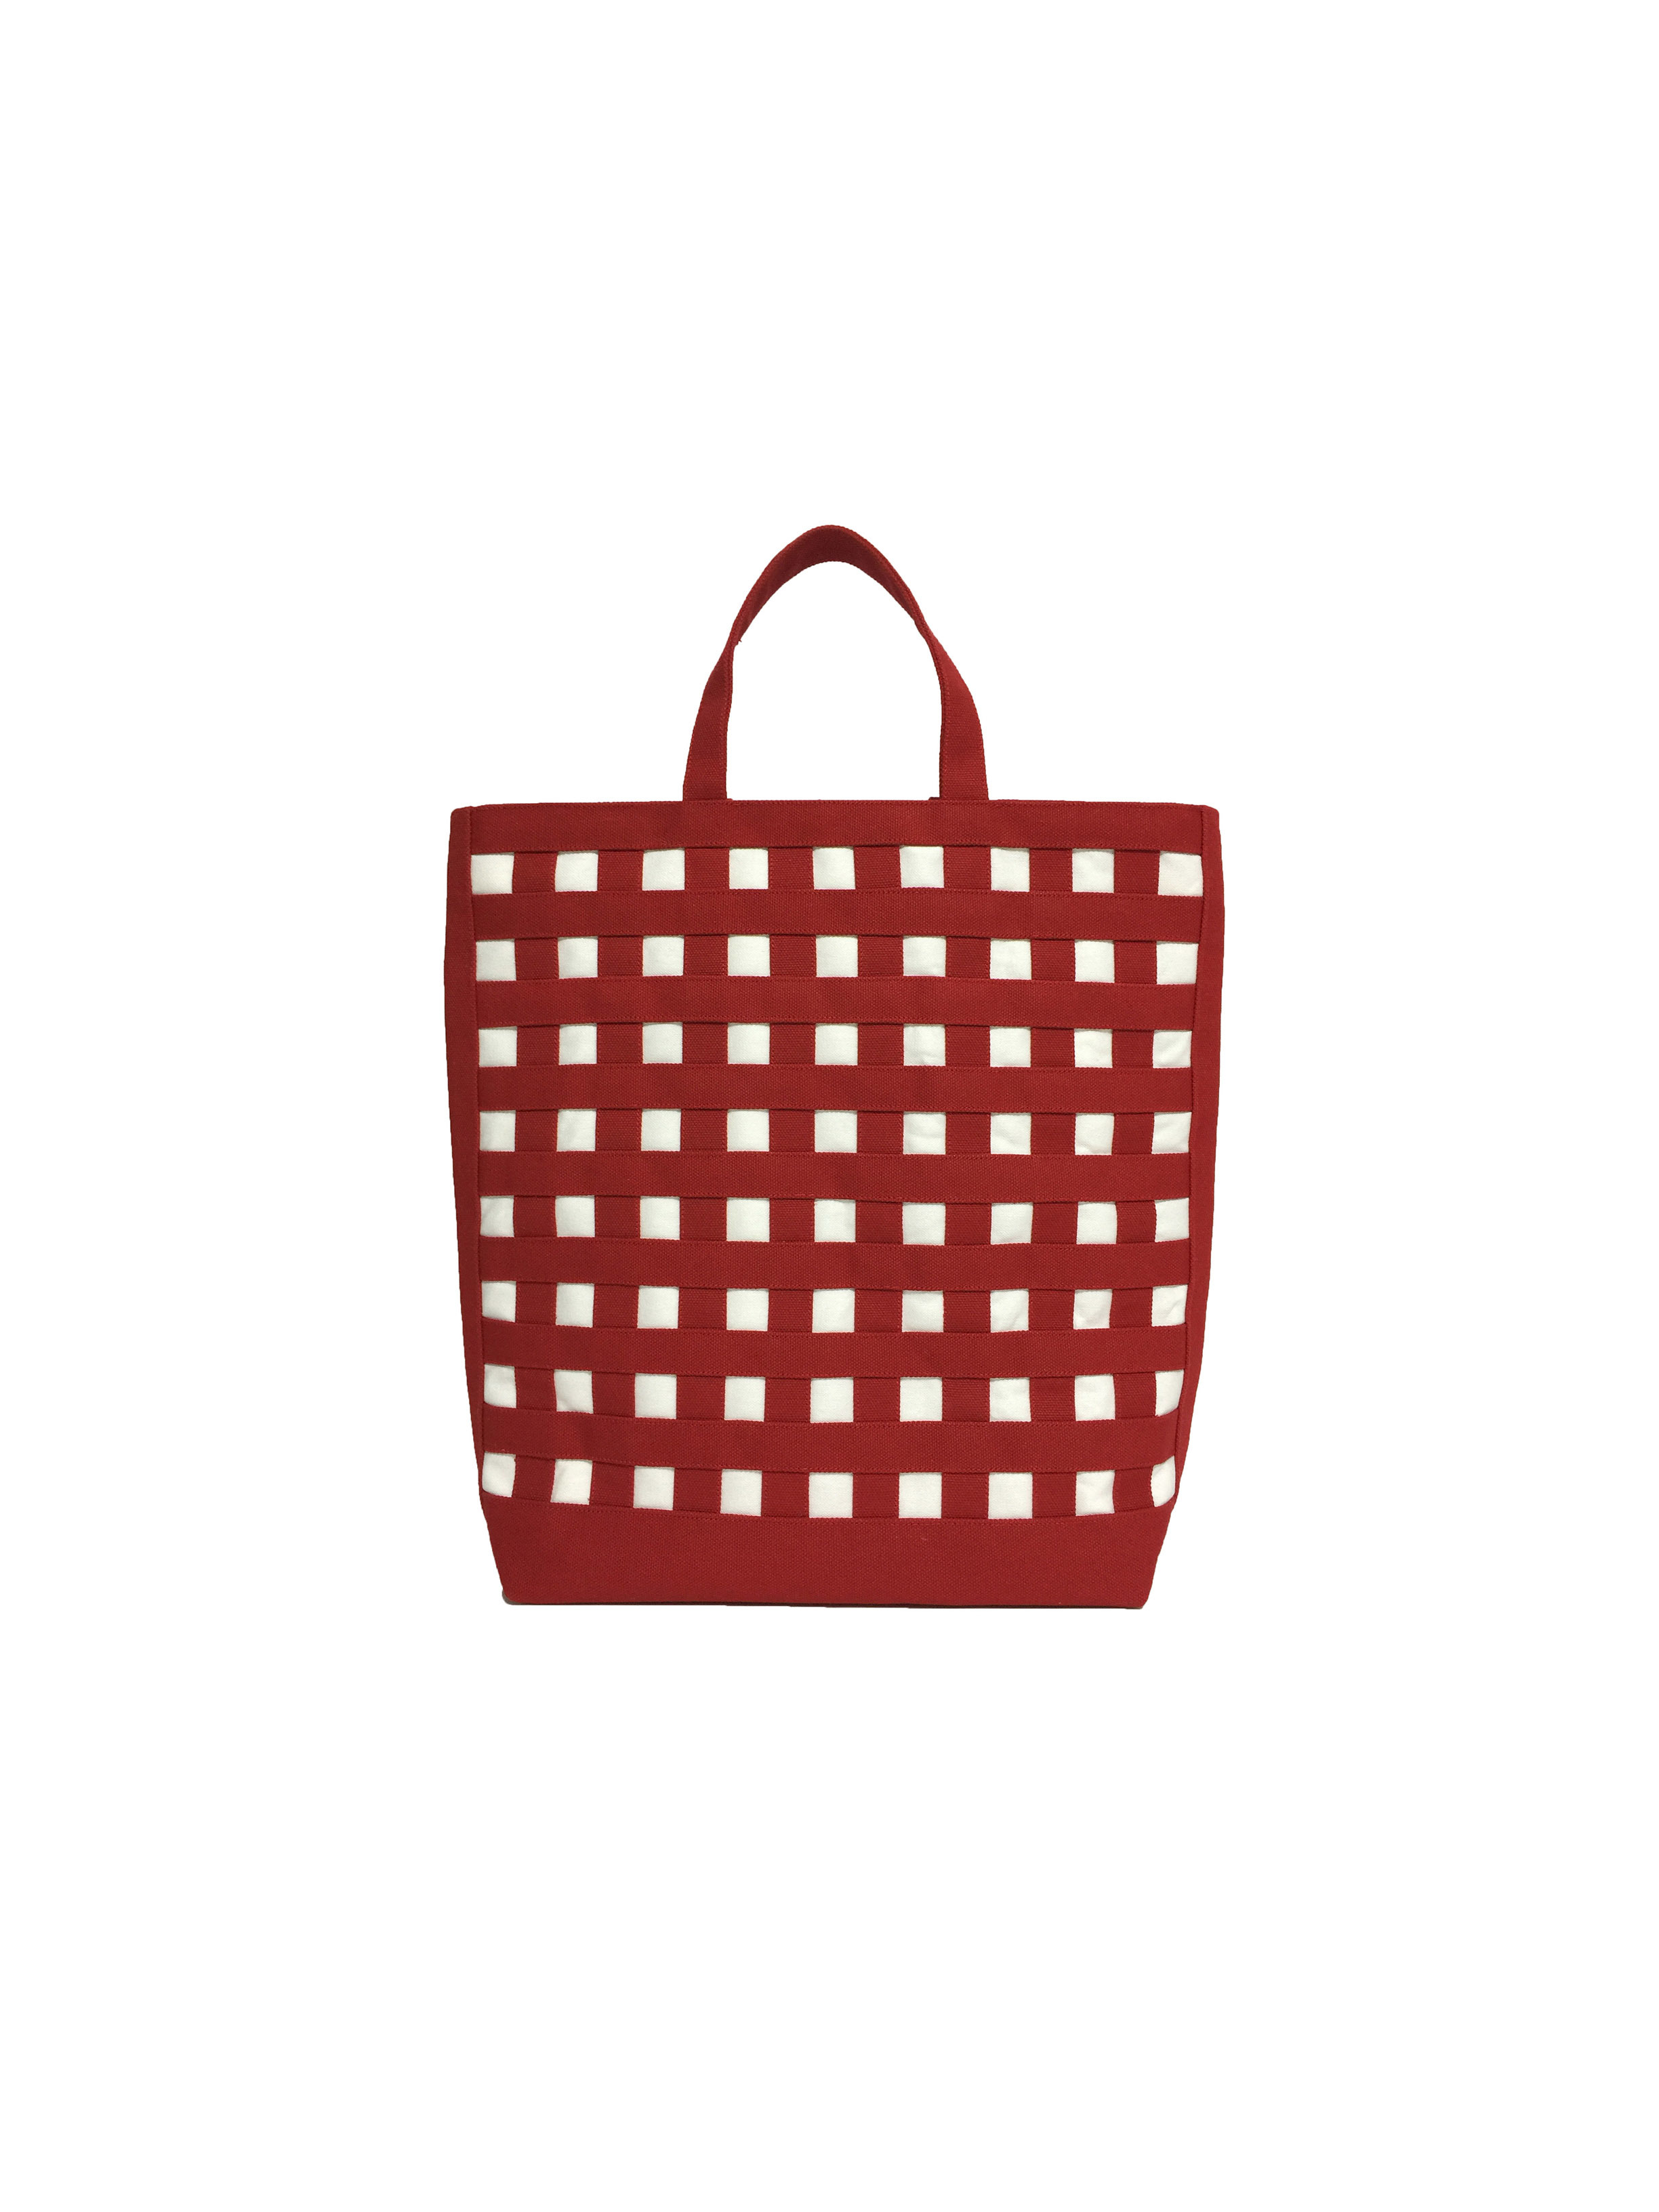 gingham tote ギンガムトート carrés  カレ 20-72  カラー:ダークレッド